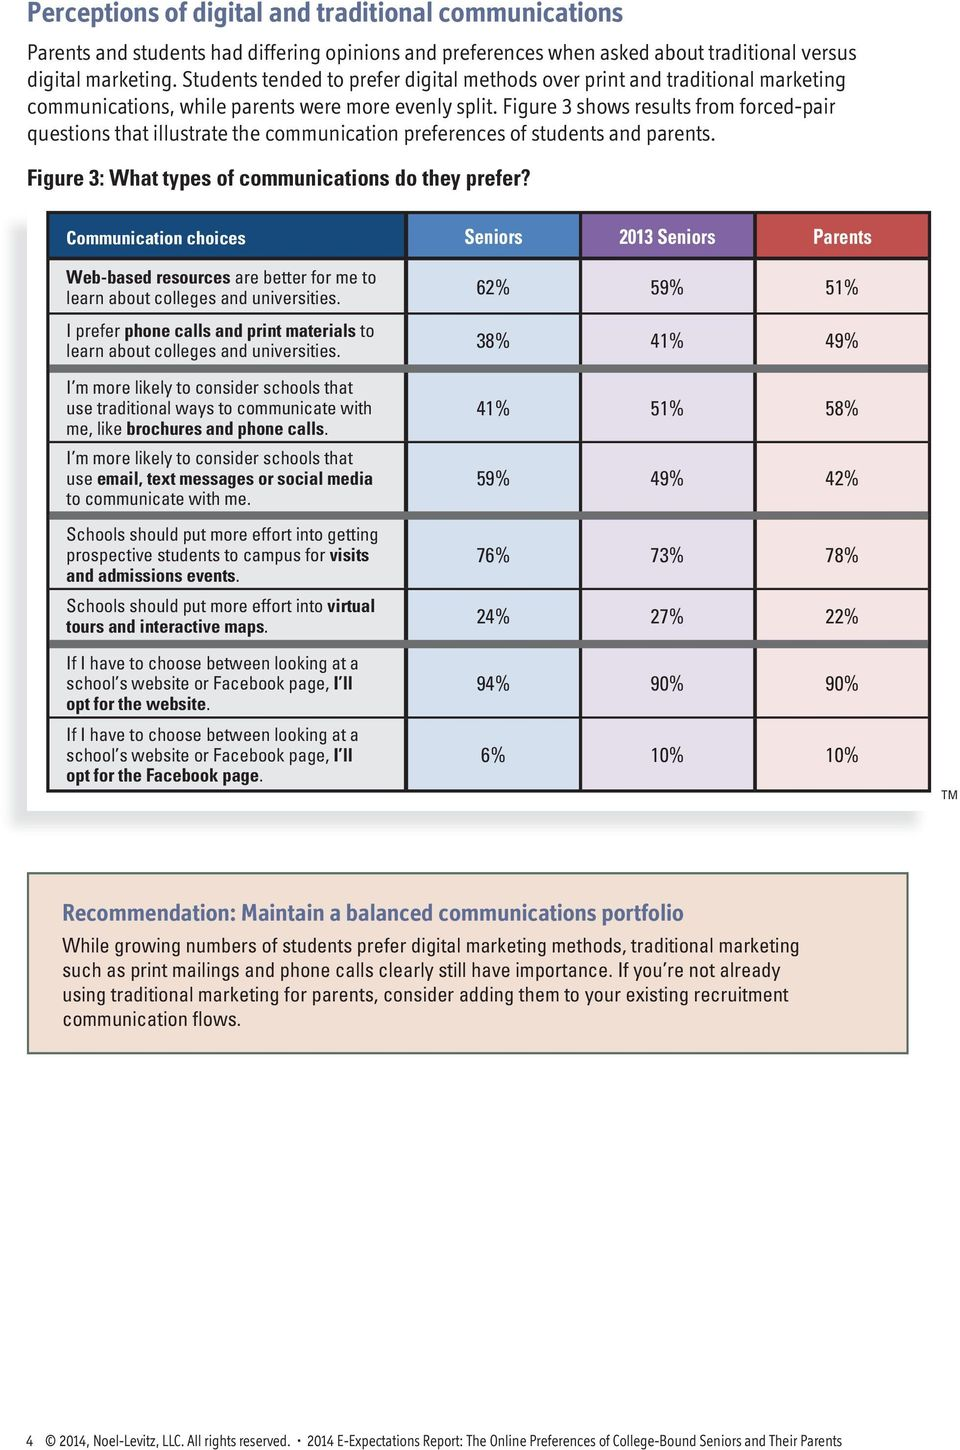 Figure 3 shows results from forced-pair questions that illustrate the communication preferences of students and parents. Figure 3: What types of communications do they prefer?